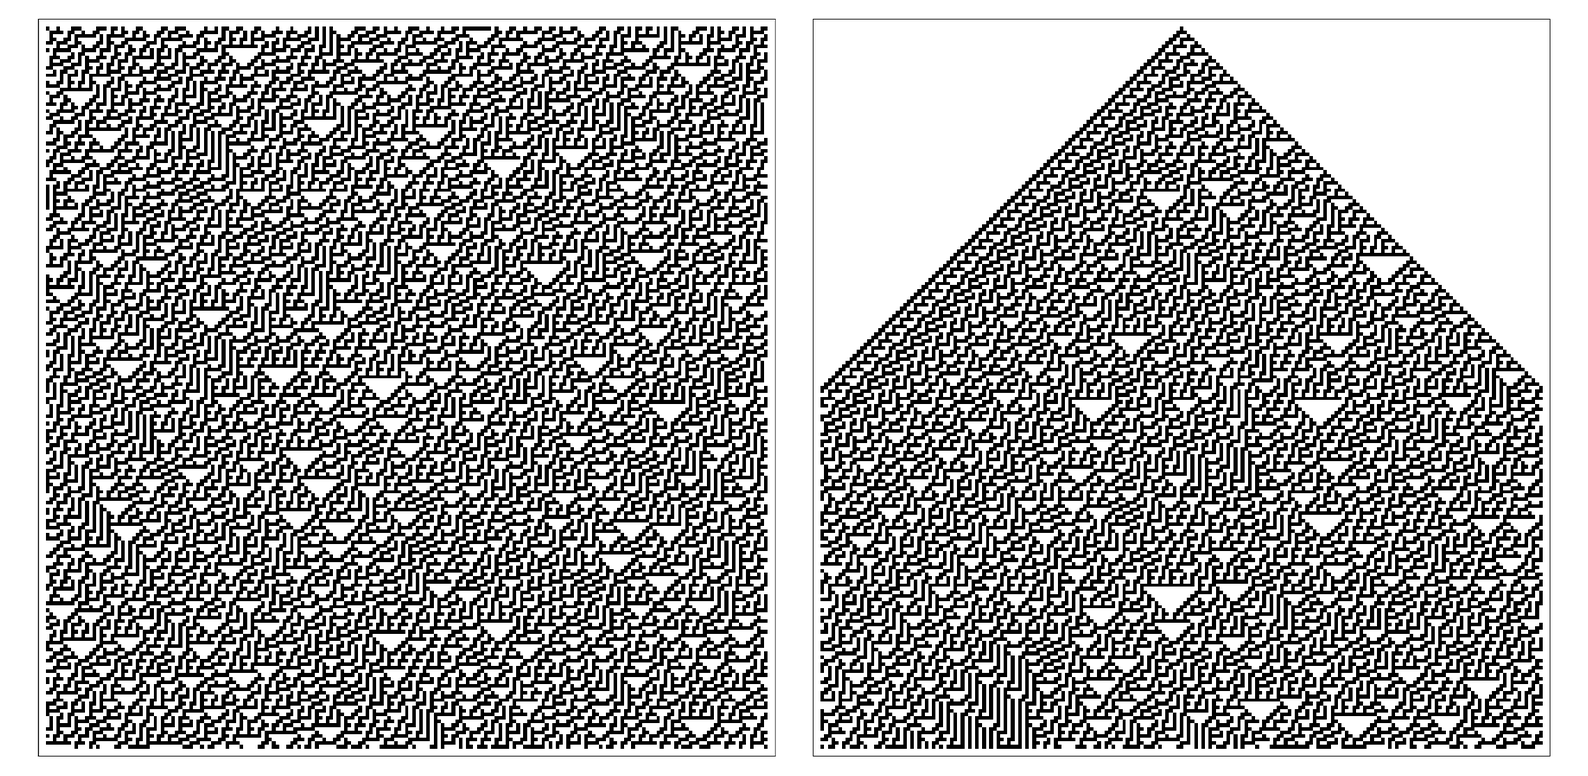 Comparison of patterns produced by rule 30